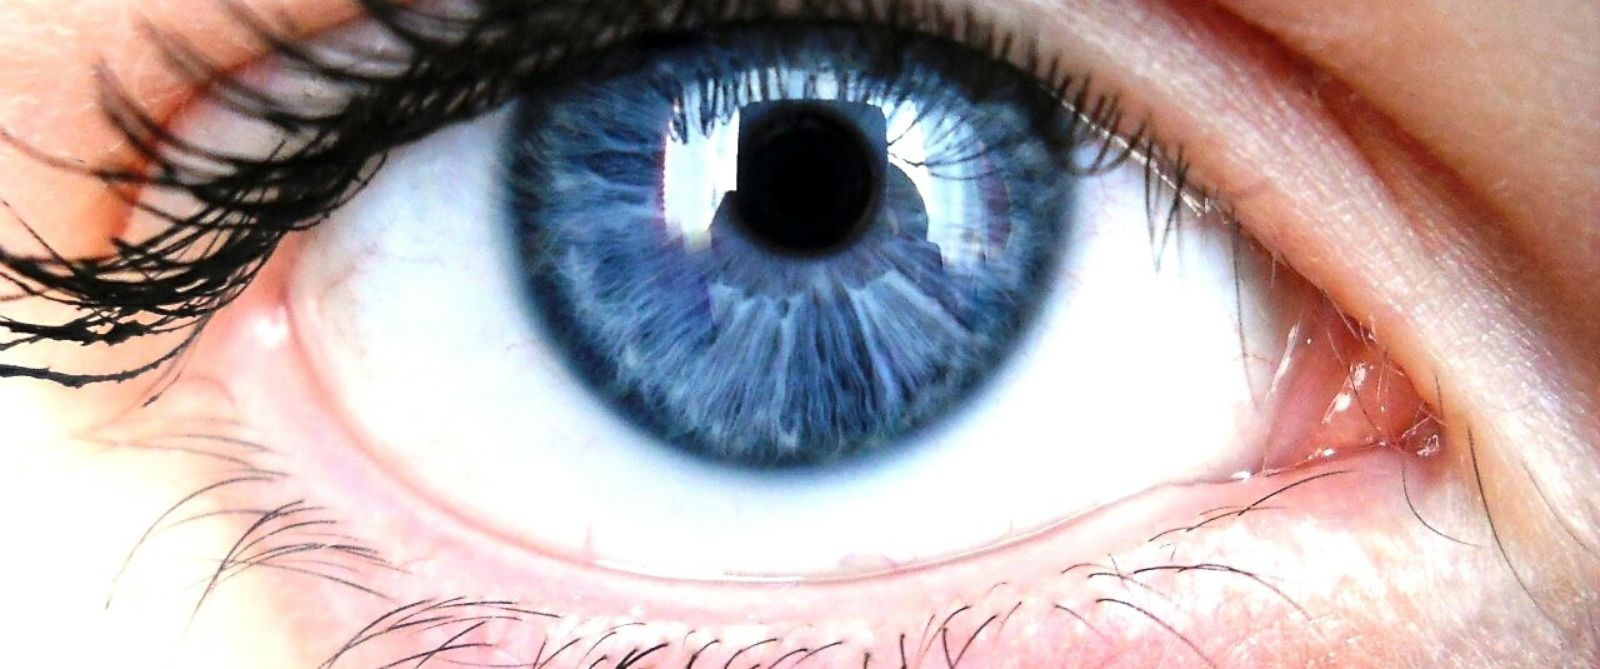 Study found relation between blue eyes and increased risk of alcoholism.